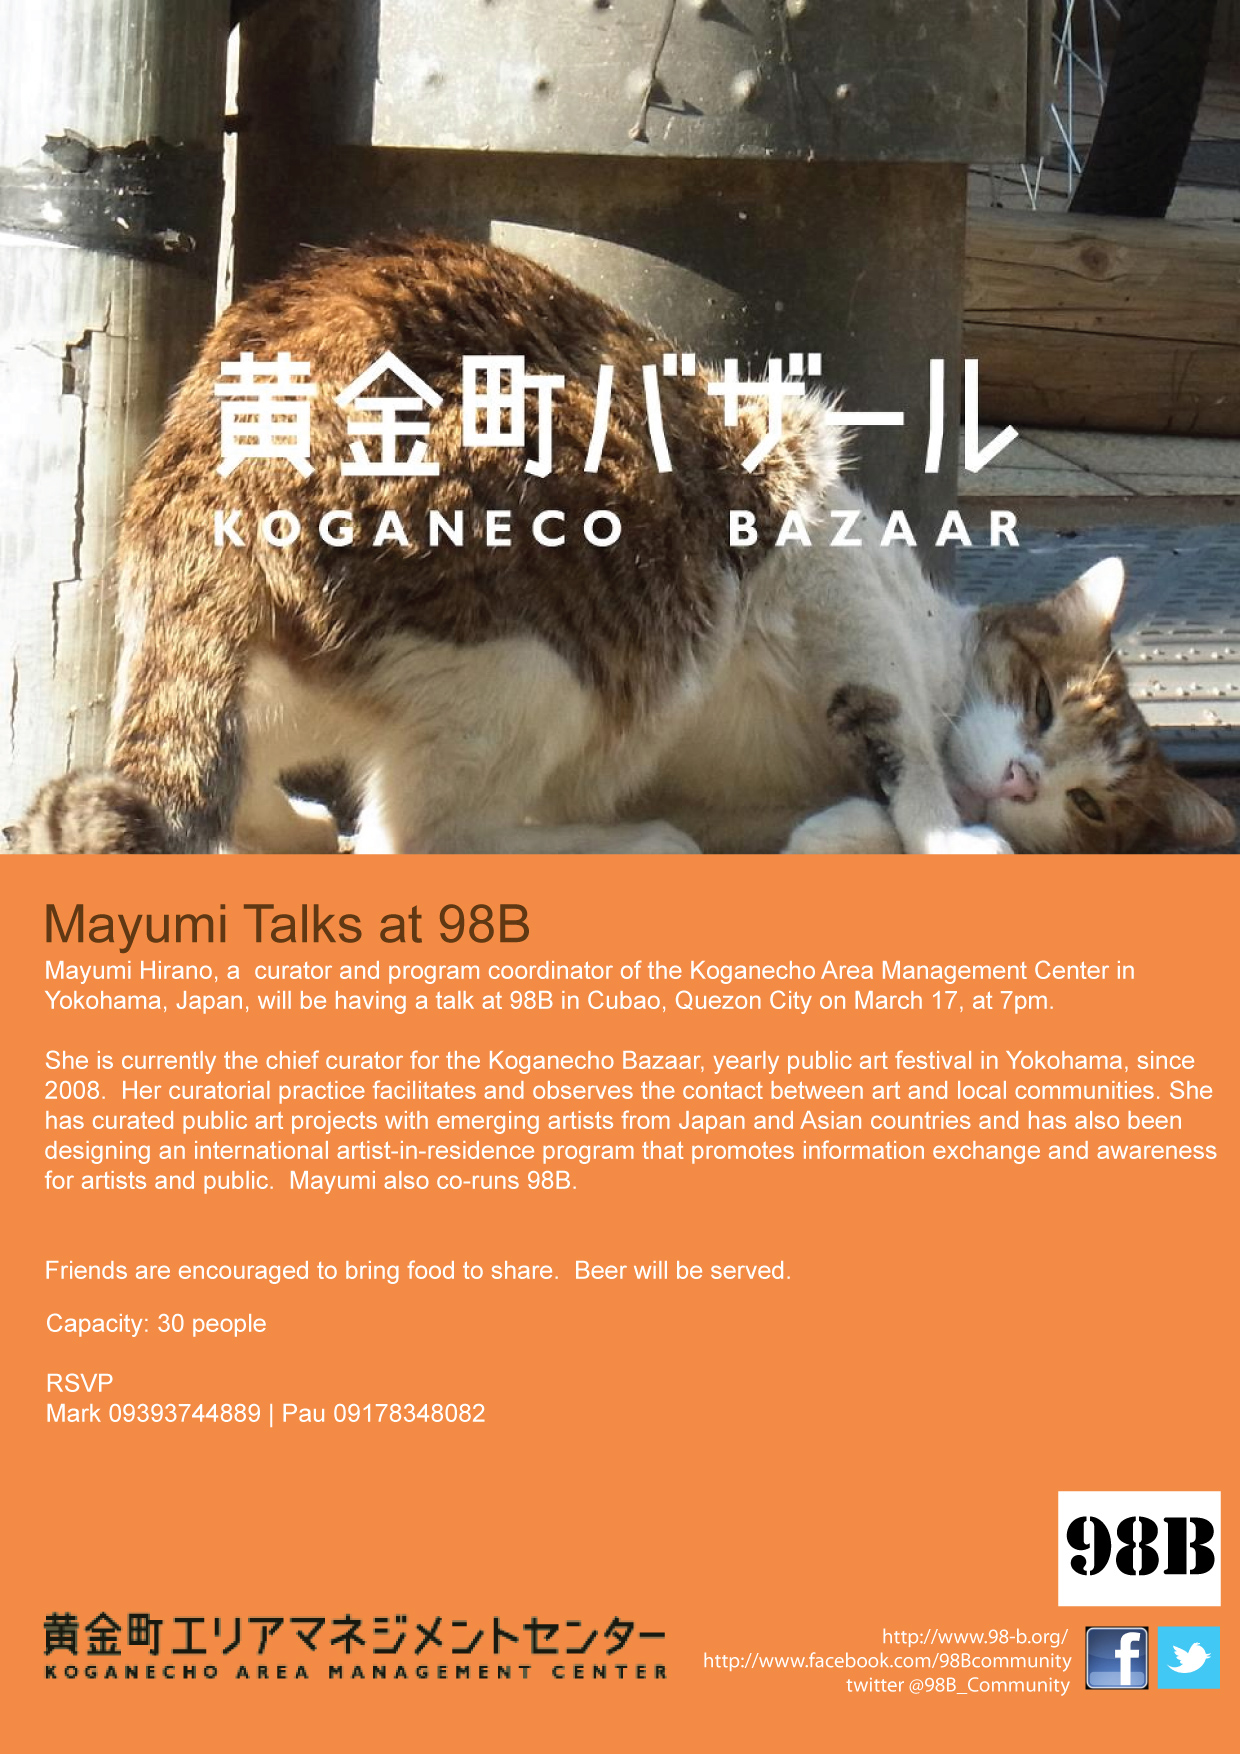 Mayumi Talks at 98B Mayumi Hirano, a curator and program coordinator of the Koganecho Area Management Center in  Yokohama, Japan, will be having a talk at 98B in Cubao, Quezon City on March 17, at 7pm. She is currently the chief curator for the Koganecho Bazaar, yearly public art festival in Yokohama, since  2008. Her curatorial practice facilitates and observes the contact between art and local communities. She  has curated public art projects with emerging artists from Japan and Asian countries and has also been  designing an international artist-in-residence program that promotes information exchange and awareness  for artists and public. Mayumi also co-runs 98B.  Friends are encouraged to bring food to share. Beer will be served. Capacity: 30 people RSVP  Mark 09393744889 | Pau 09178348082  __________________________________ Mayumi Hirano is a curator and program coordinator of the Koganecho Area Management Center since 2009. After completing her graduate studies at Center for Curatorial Studies, Bard College, she has worked as a curatorial intern at New Museum, NY, curatorial staff at the Yokohama Triennale 2005, and researcher for Asia Art Archive. She is currently working on to develop an artist-in-residence program in 98B